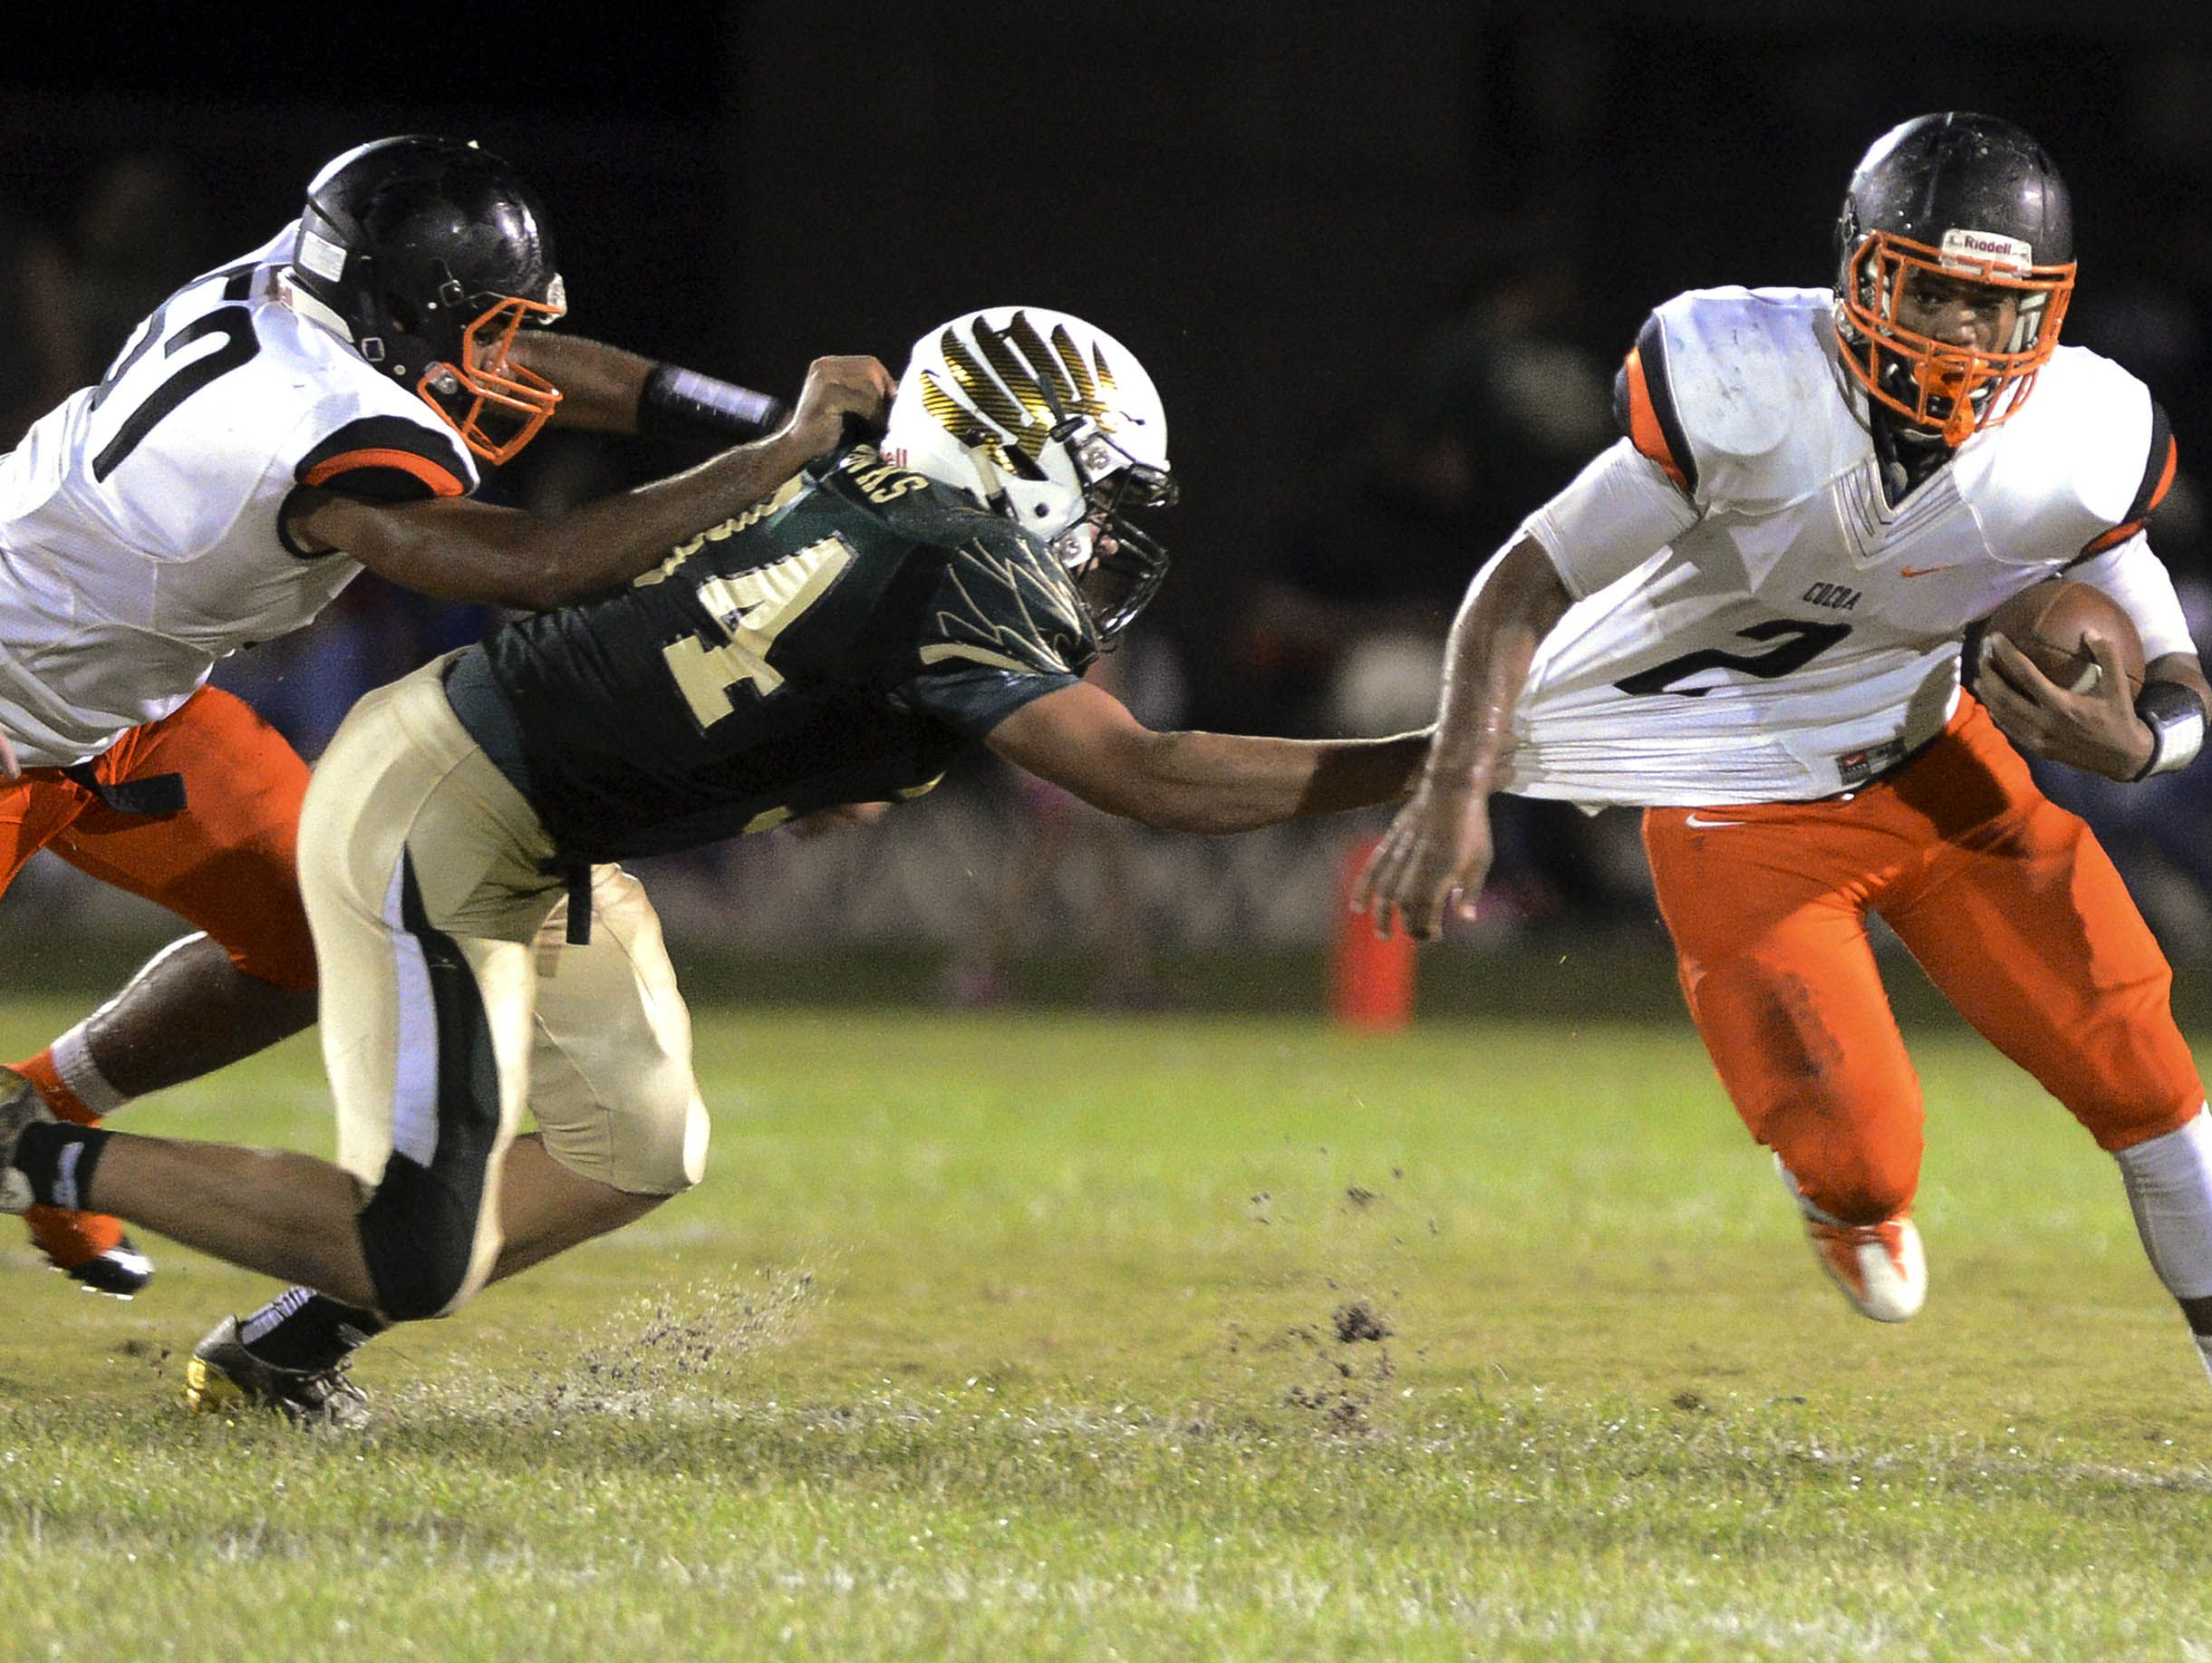 Cocoa's Timmy Pratt tries to get past Brandon Mays of Viera during a 2016 game in Viera.